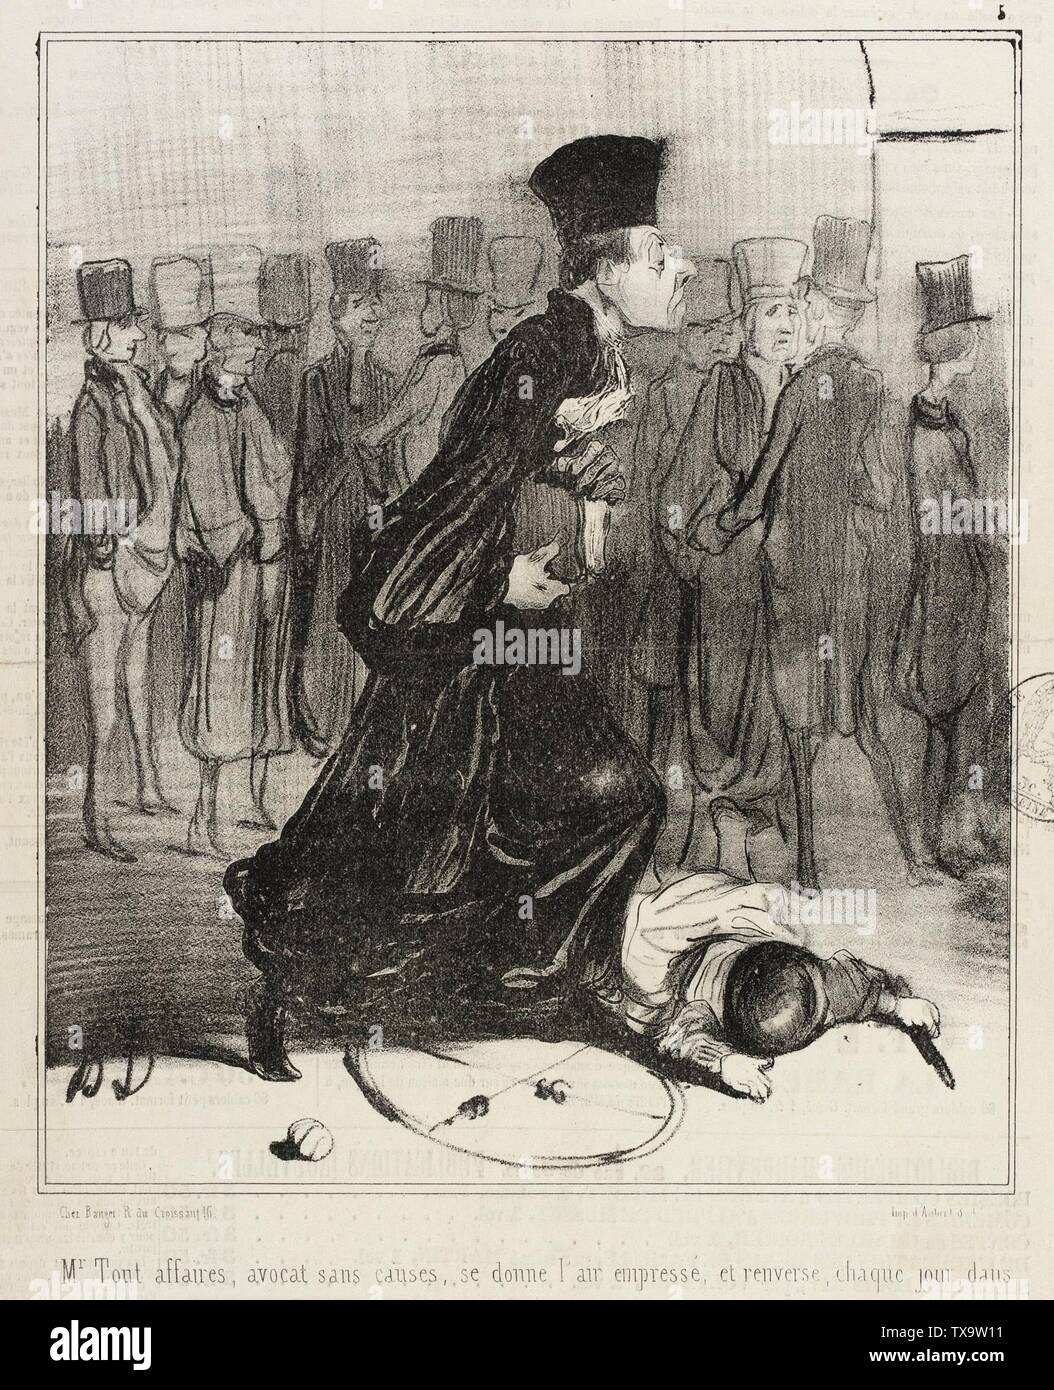 'Mr Tout affaires, avocat sans causes...; English:  France, 1840 Series: Les Parisiens Periodical: Le Charivari, 30 June 1840 Prints; lithographs Lithograph Format: 14 1/4 x 9 1/2 in. (36.2 x 24.13 cm); plate: 8 1/2 x 8 in. (21.59 x 20.32 cm) Gift of David Rose in memory of Ida Rose (AC1992.169.1) Prints and Drawings; 1840date QS:P571,+1840-00-00T00:00:00Z/9; ' - Stock Image